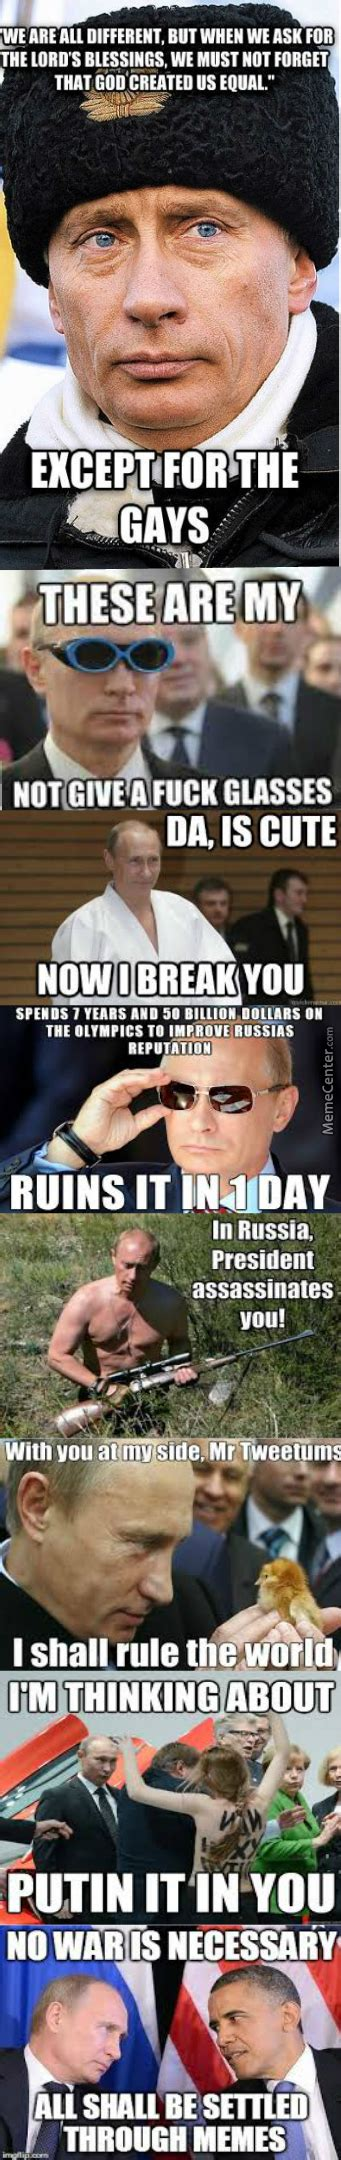 Putin Meme Compilation by res_novae   Meme Center